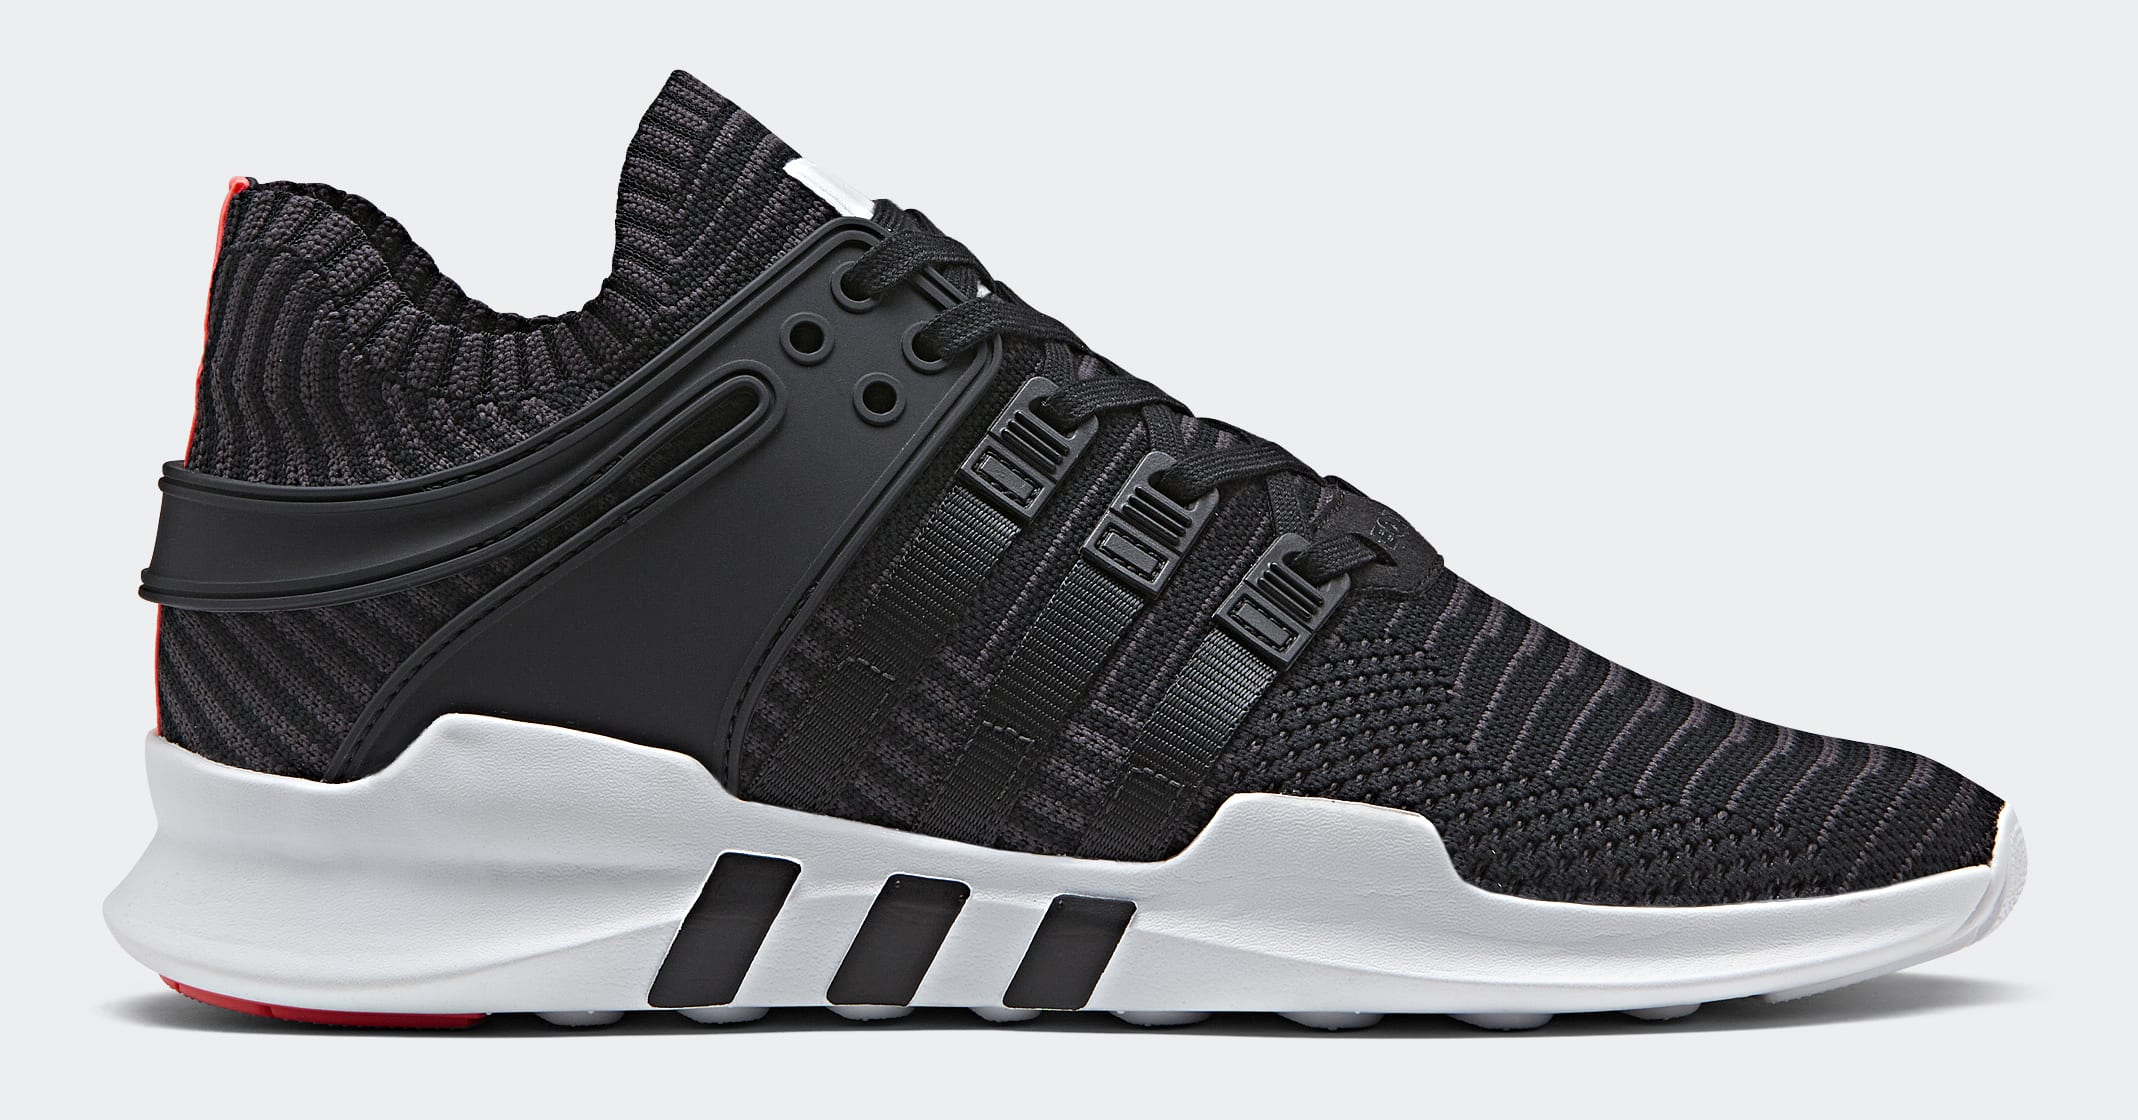 The Highs and Lows x adidas EQT Support 93 Interceptor Drops This